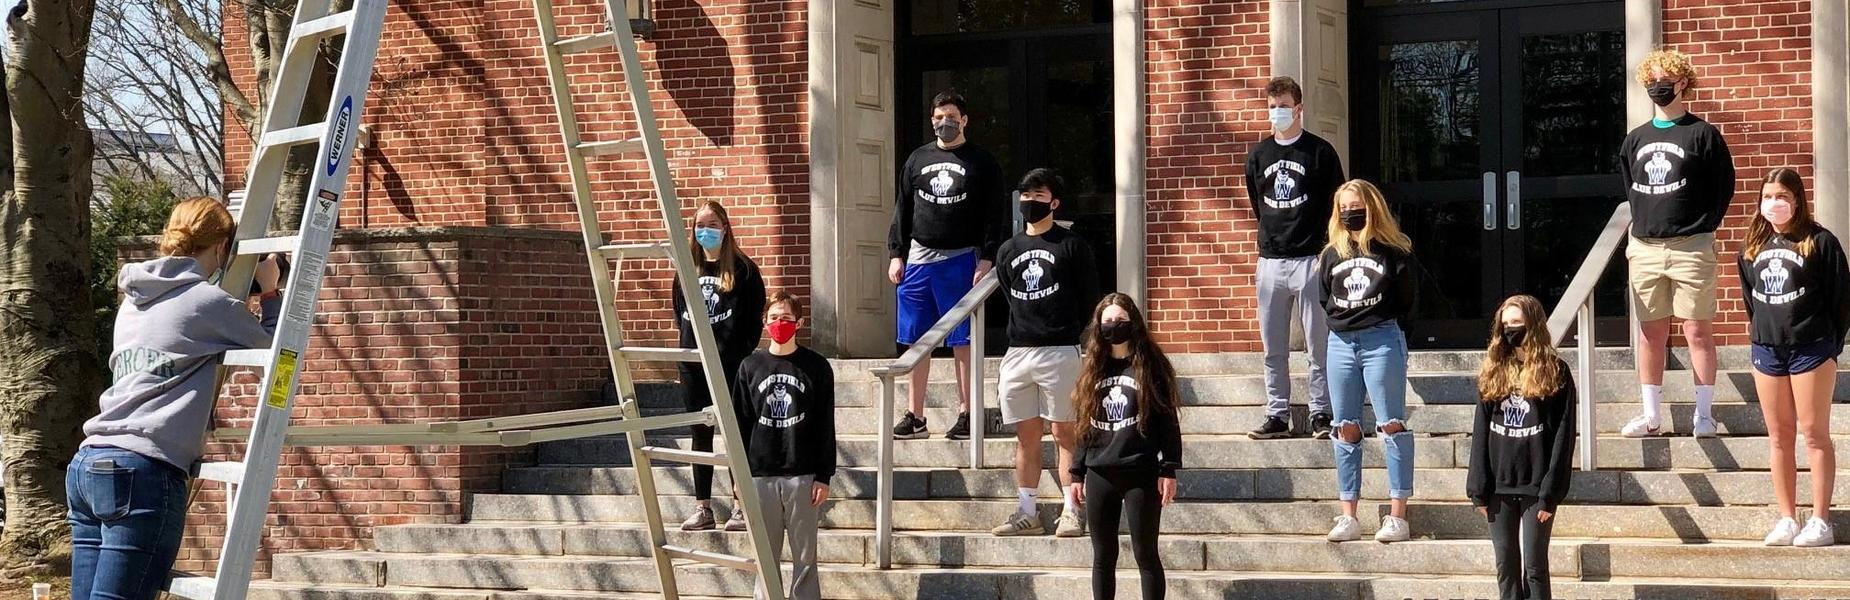 WHS seniors who attended Lincoln School's inaugural kindergarten classes in 2008-09 recently gathered outside of WHS for a special commemorative photo session.